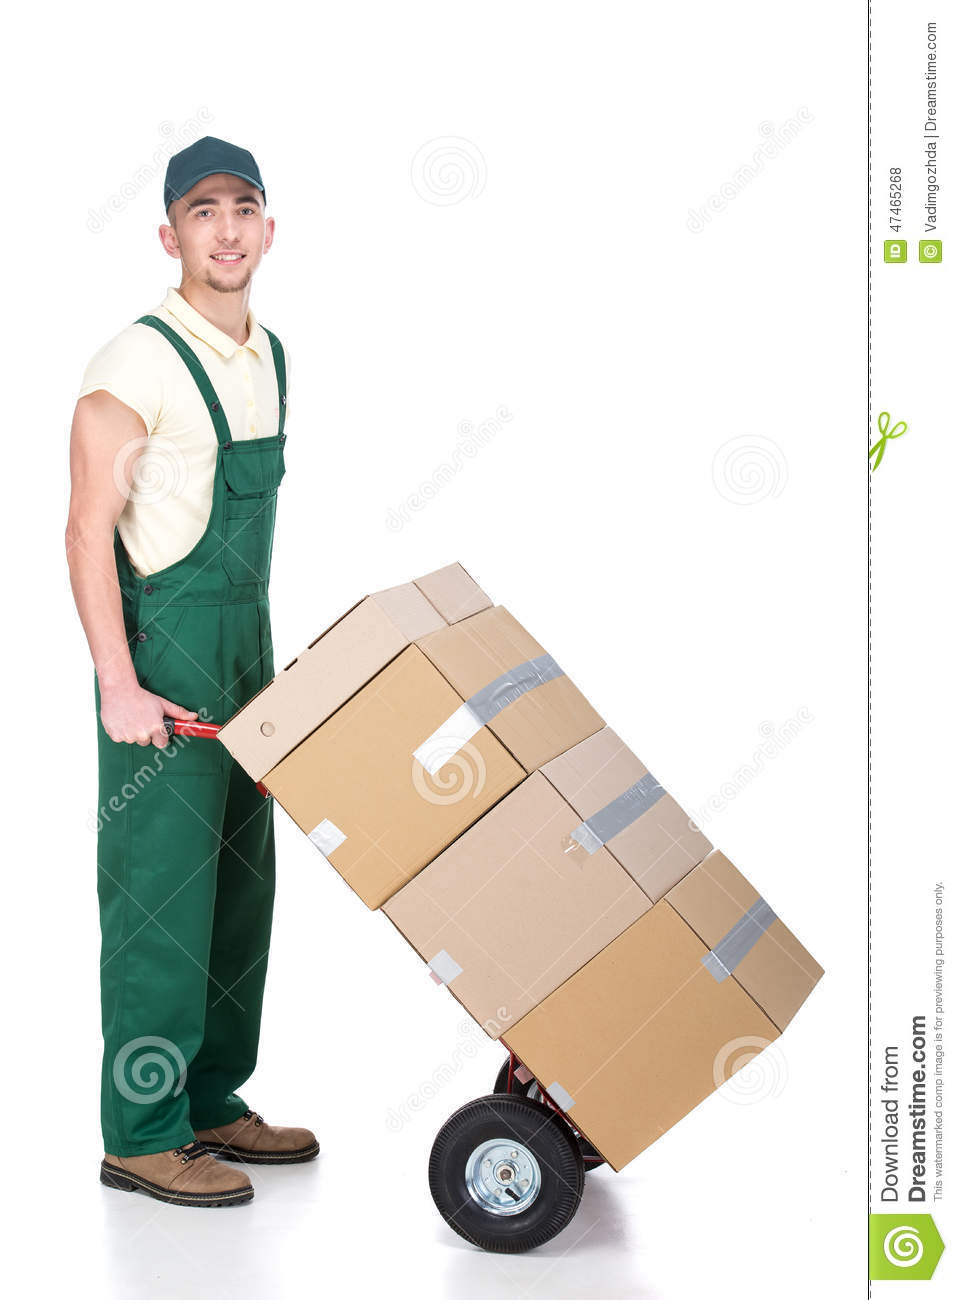 Delivery man is pushing hand truck with pile of boxes.